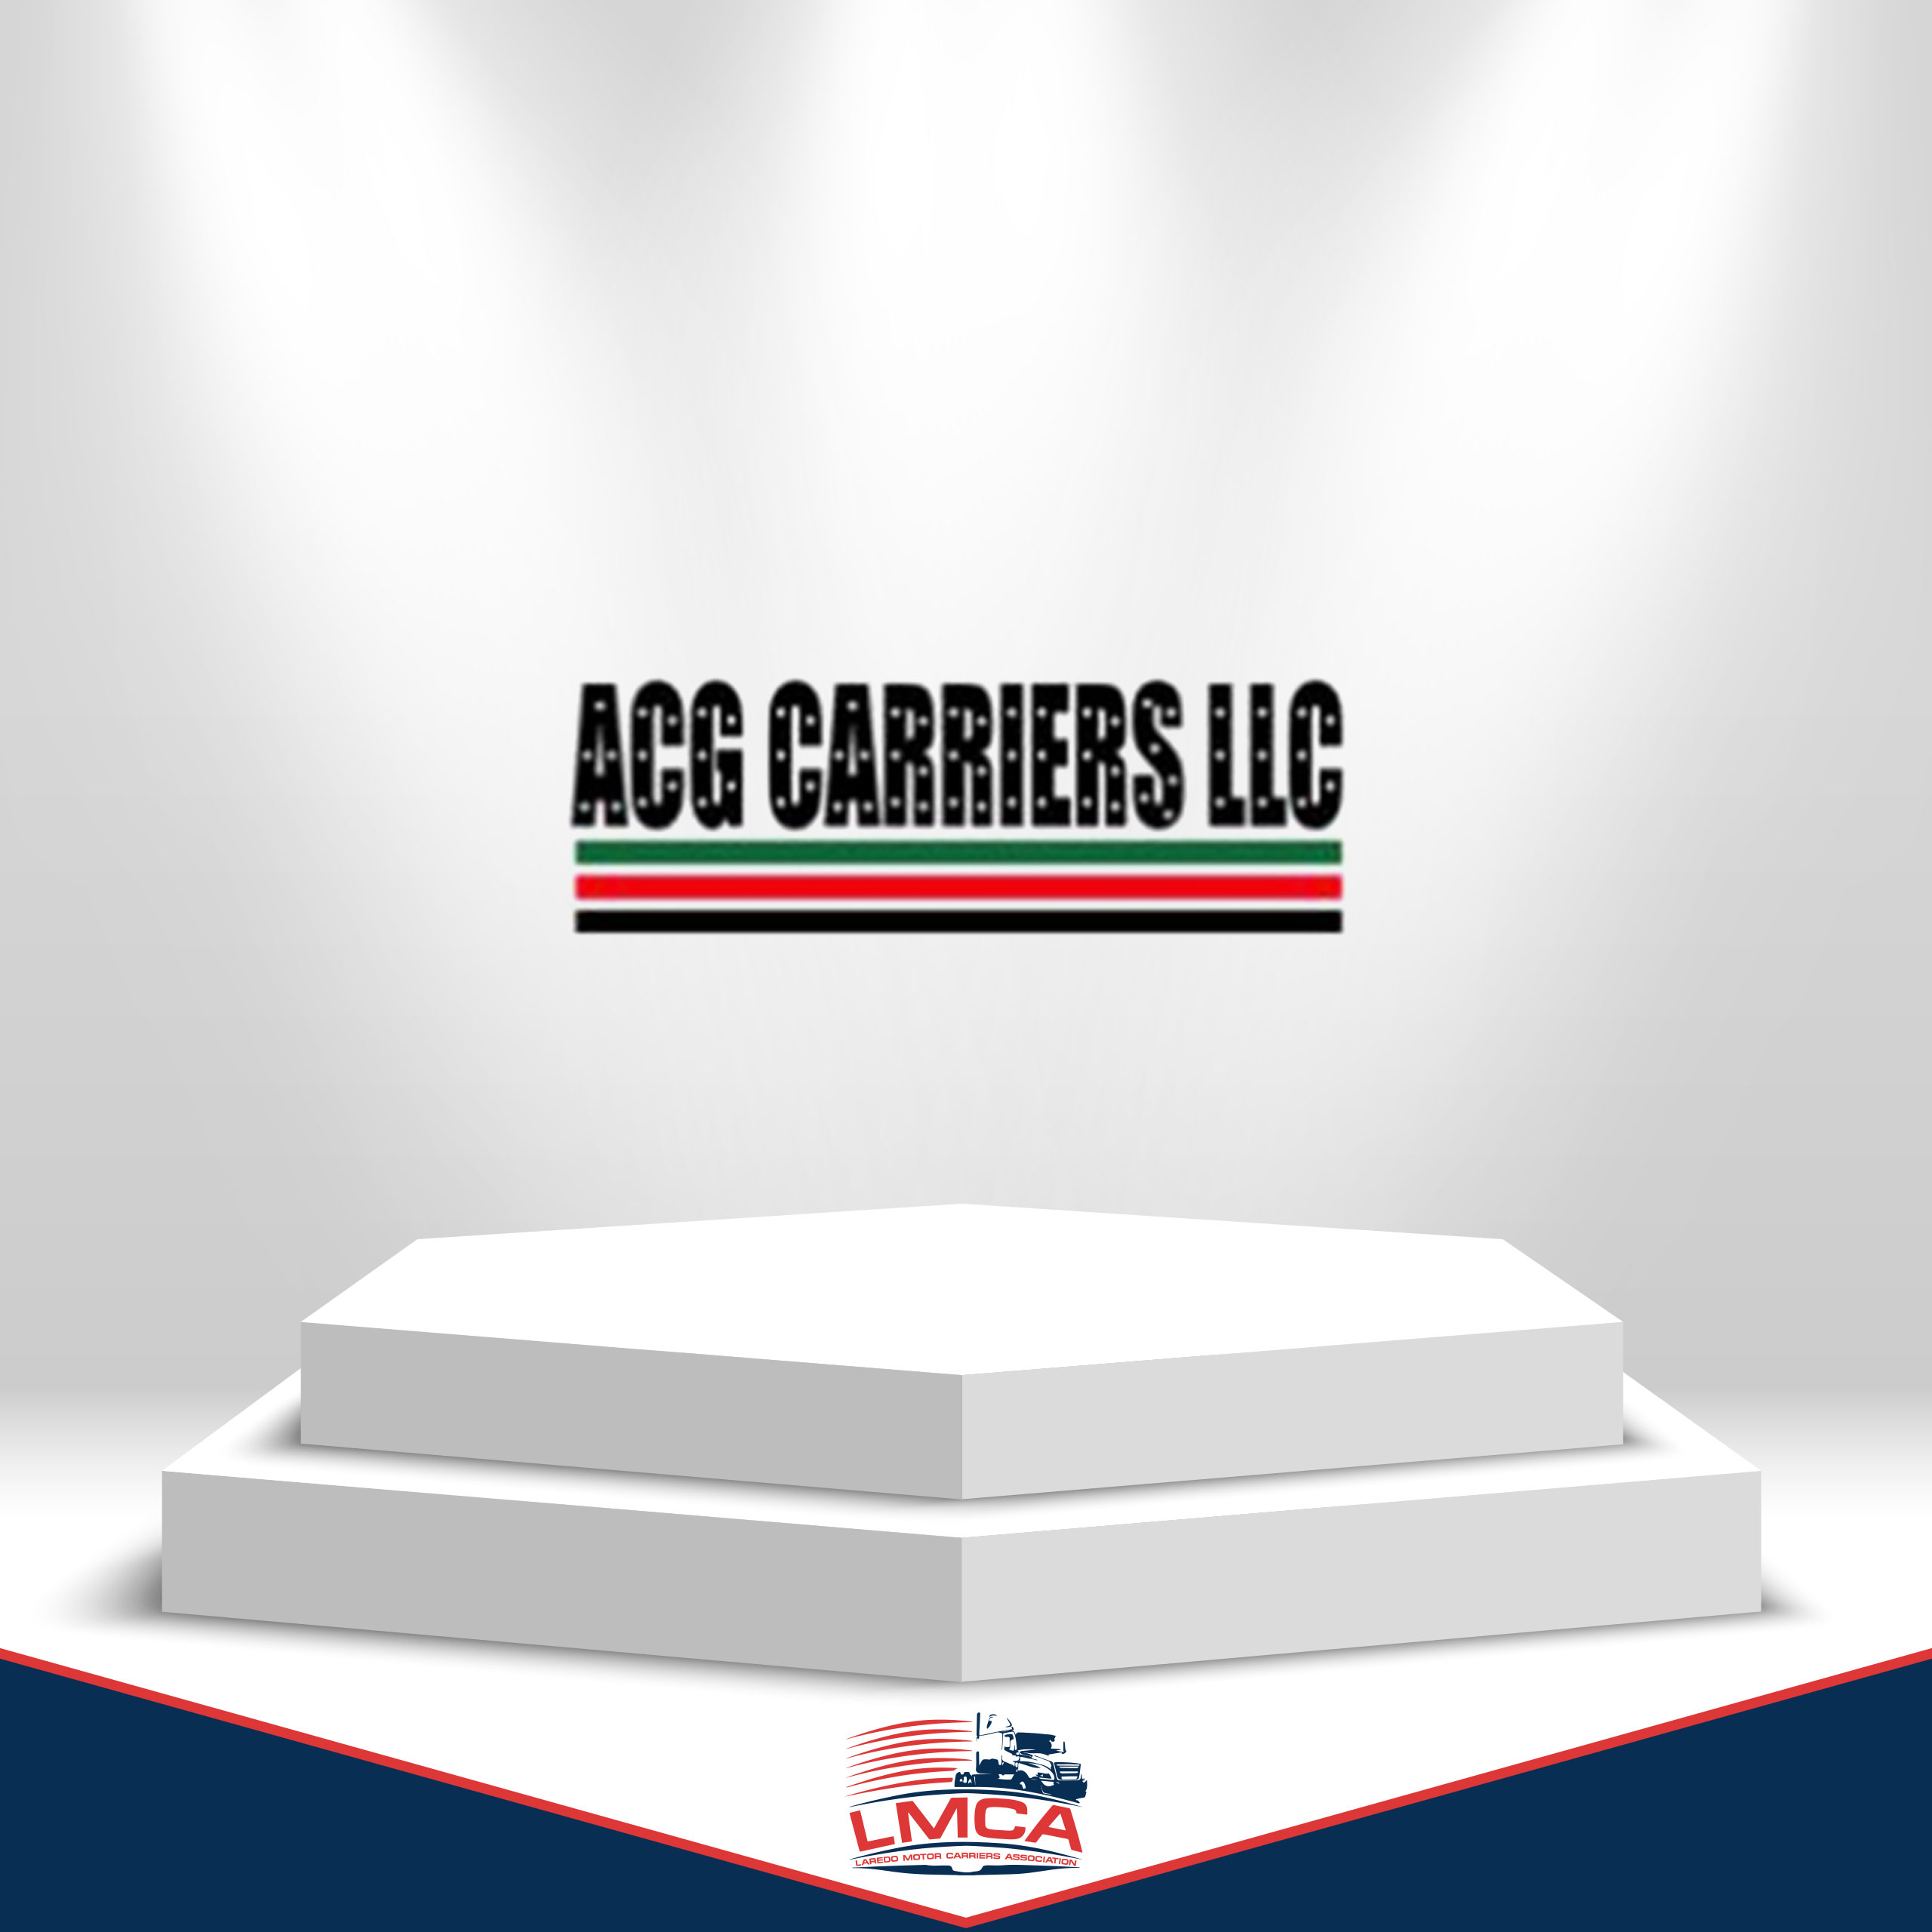 acg carriers